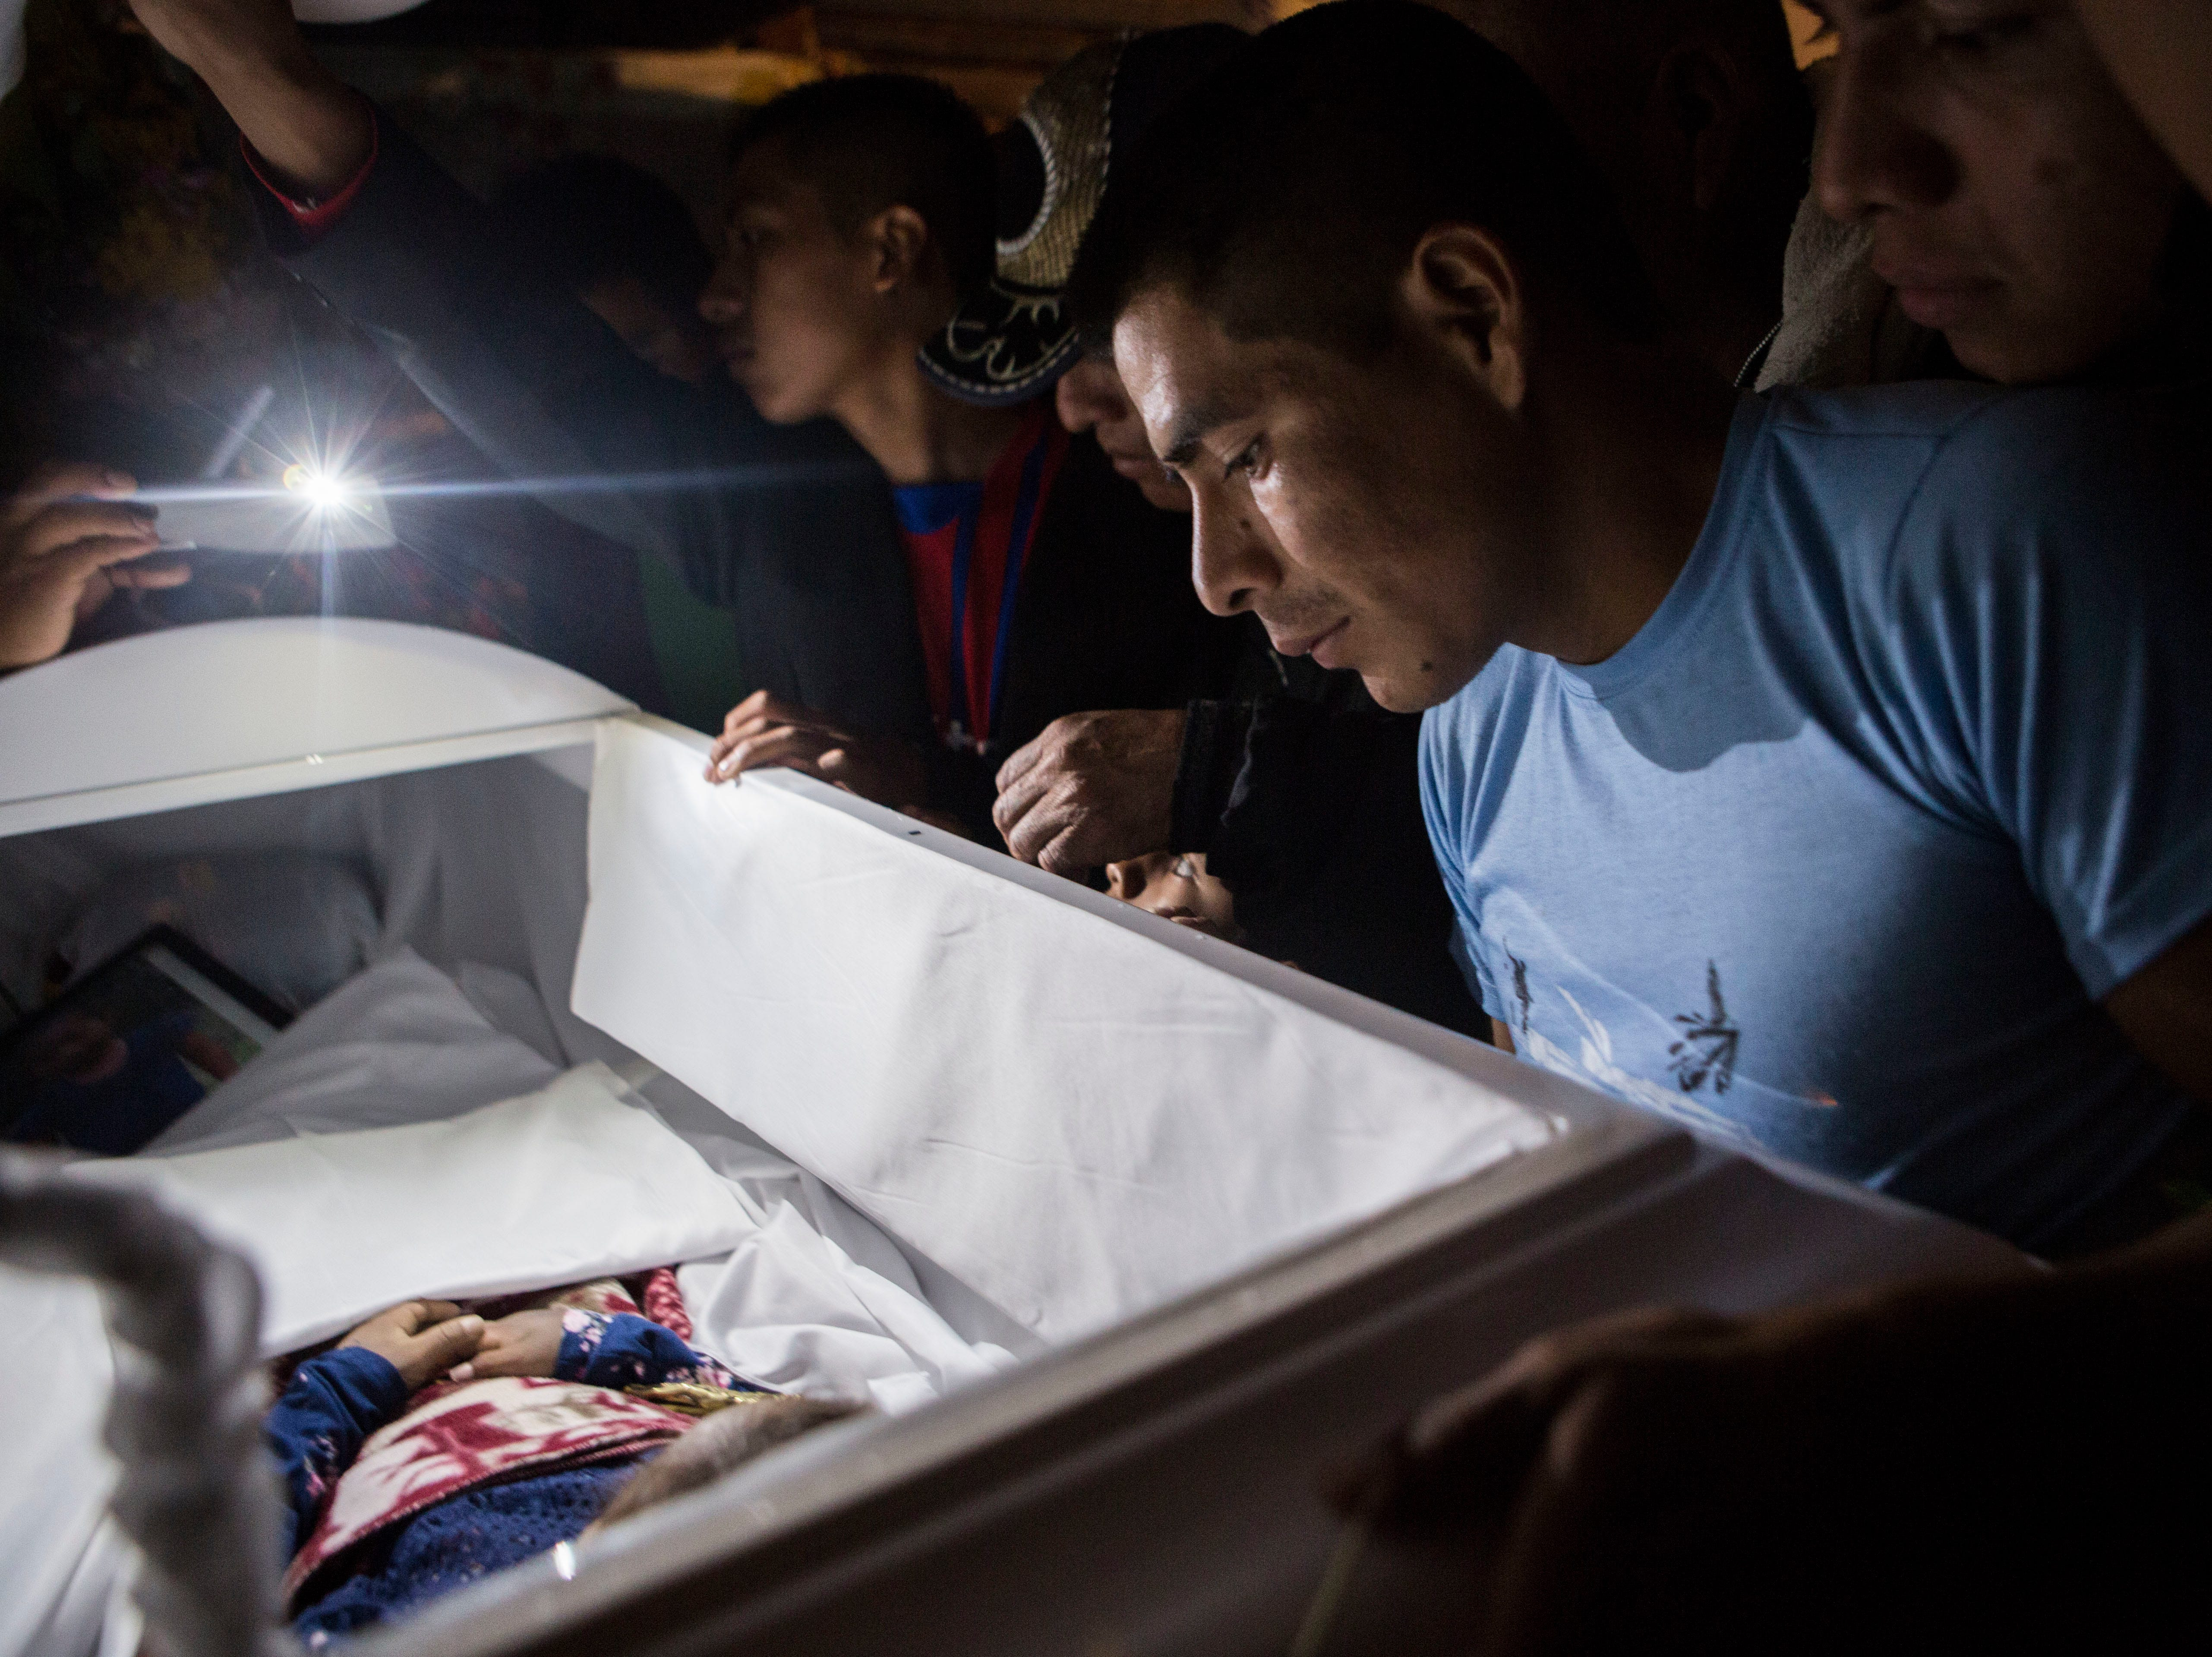 Family members pay their final respects to 7-year-old Jakelin Caal Maquin during a memorial service in her grandparent's home in San Antonio Secortez, Guatemala, Monday, Dec. 24, 2018. The body of the 7-year-old girl who died while in the custody of the U.S. Border Patrol was handed over to family members in her native Guatemala on Monday for a last goodbye.